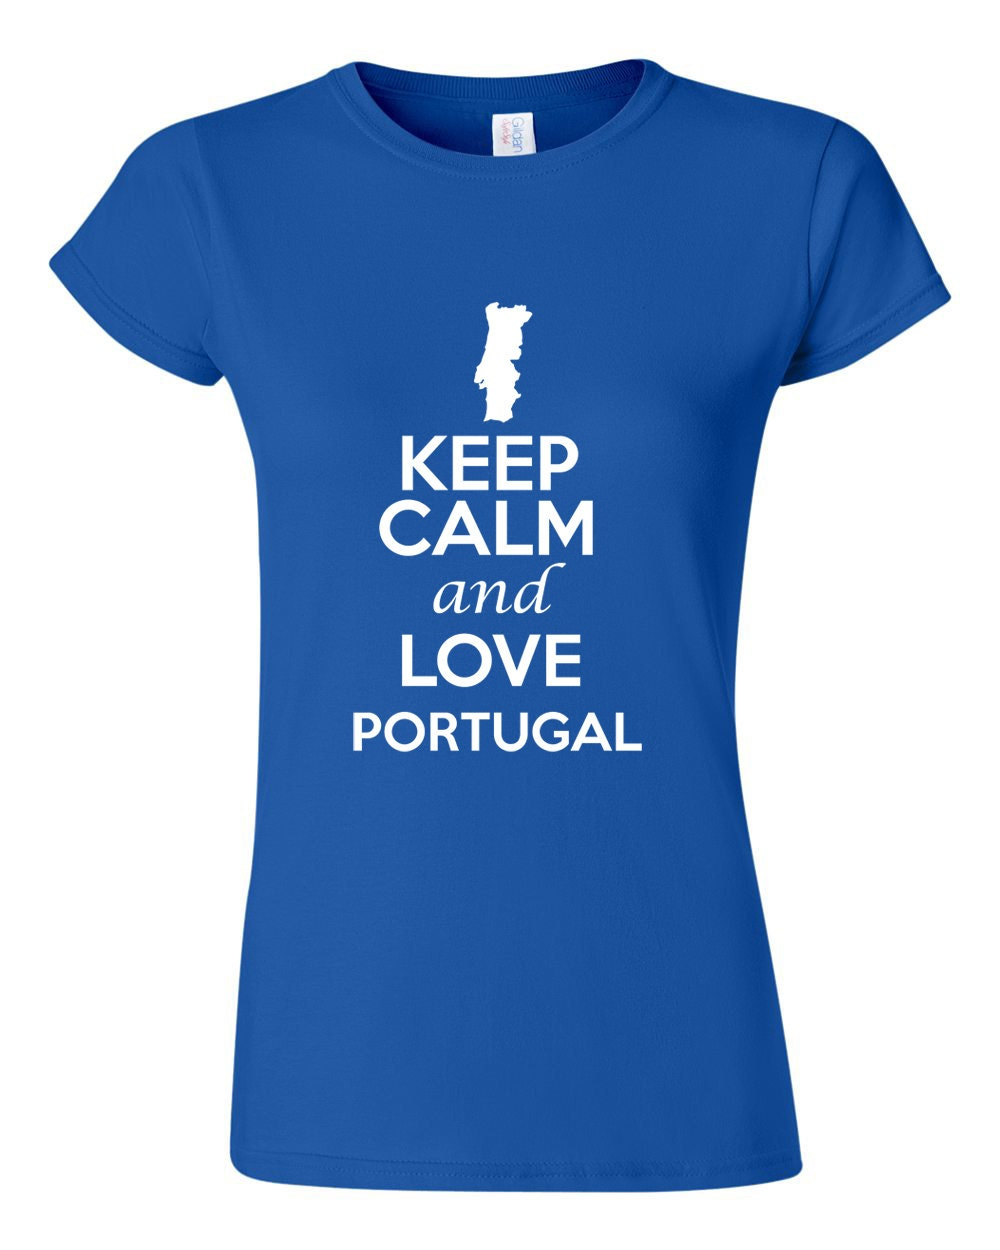 City Shirts Junior Keep Calm And Love Portugal Novelty Statement Graphic T-Shirt Tee 1043 at Sears.com